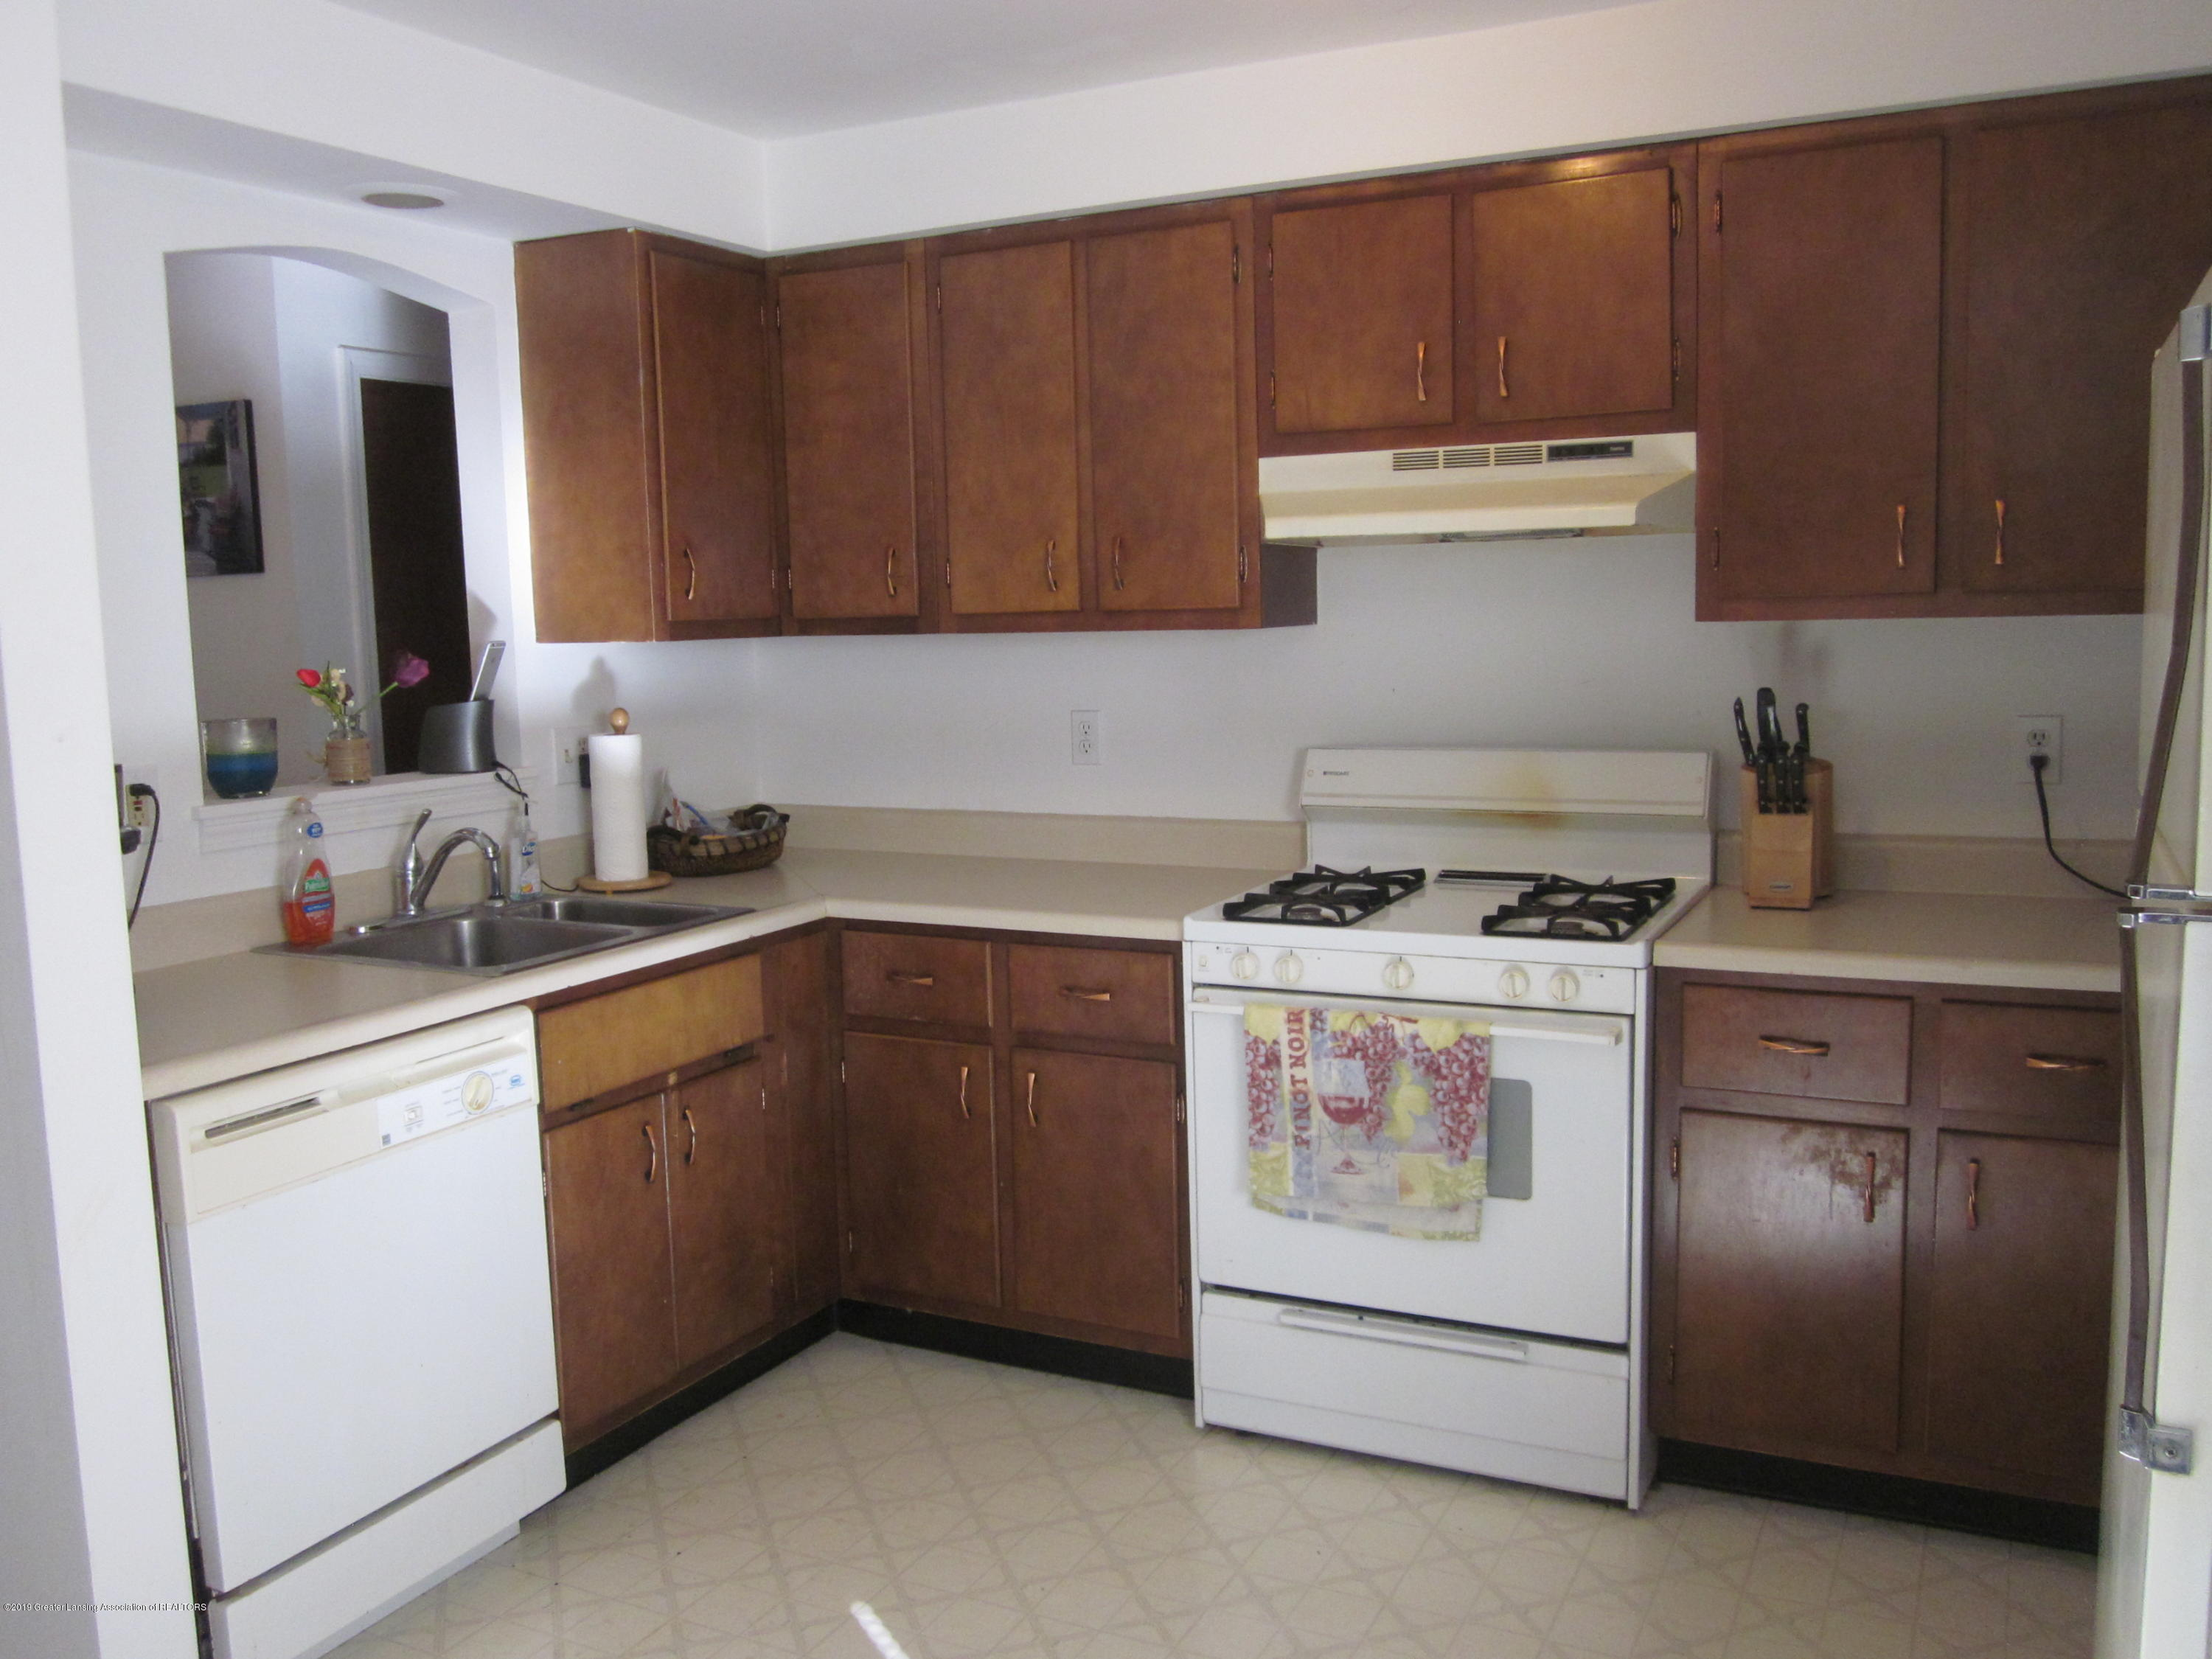 535 S Magnolia Ave - Kitchen - 3